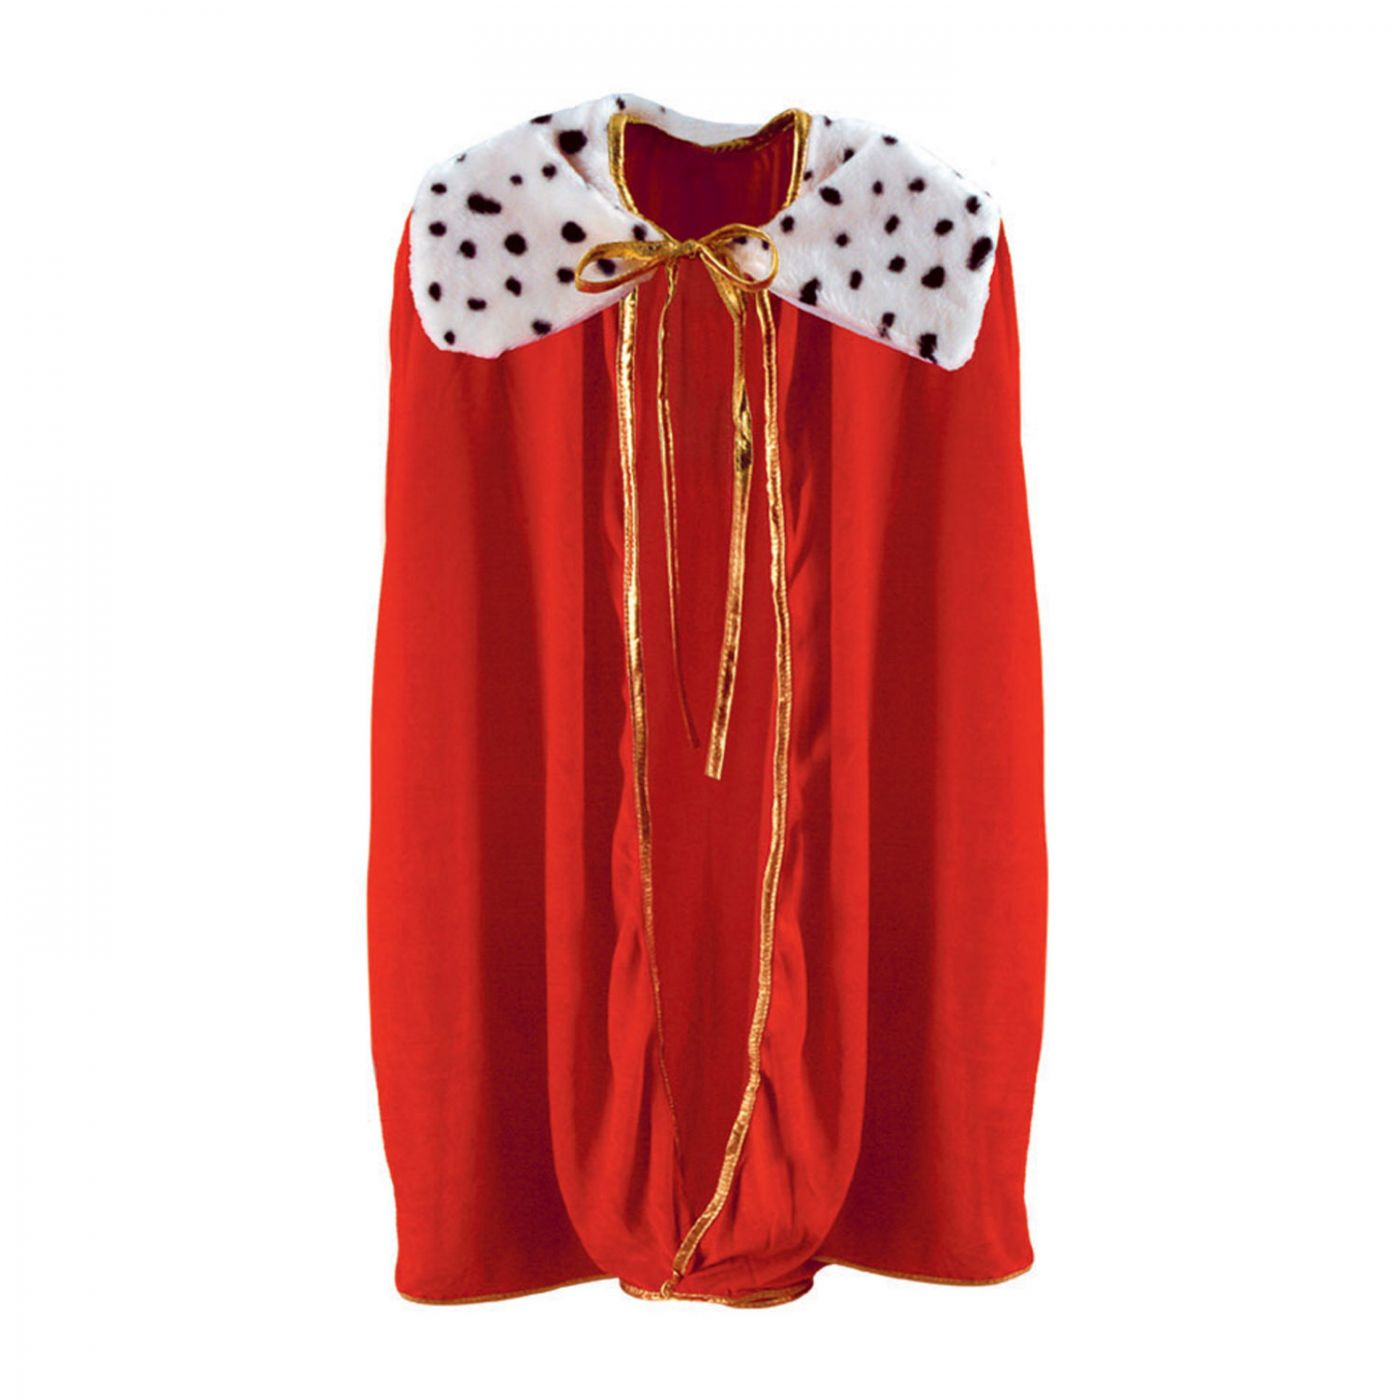 Child King/Queen Robe (1) image